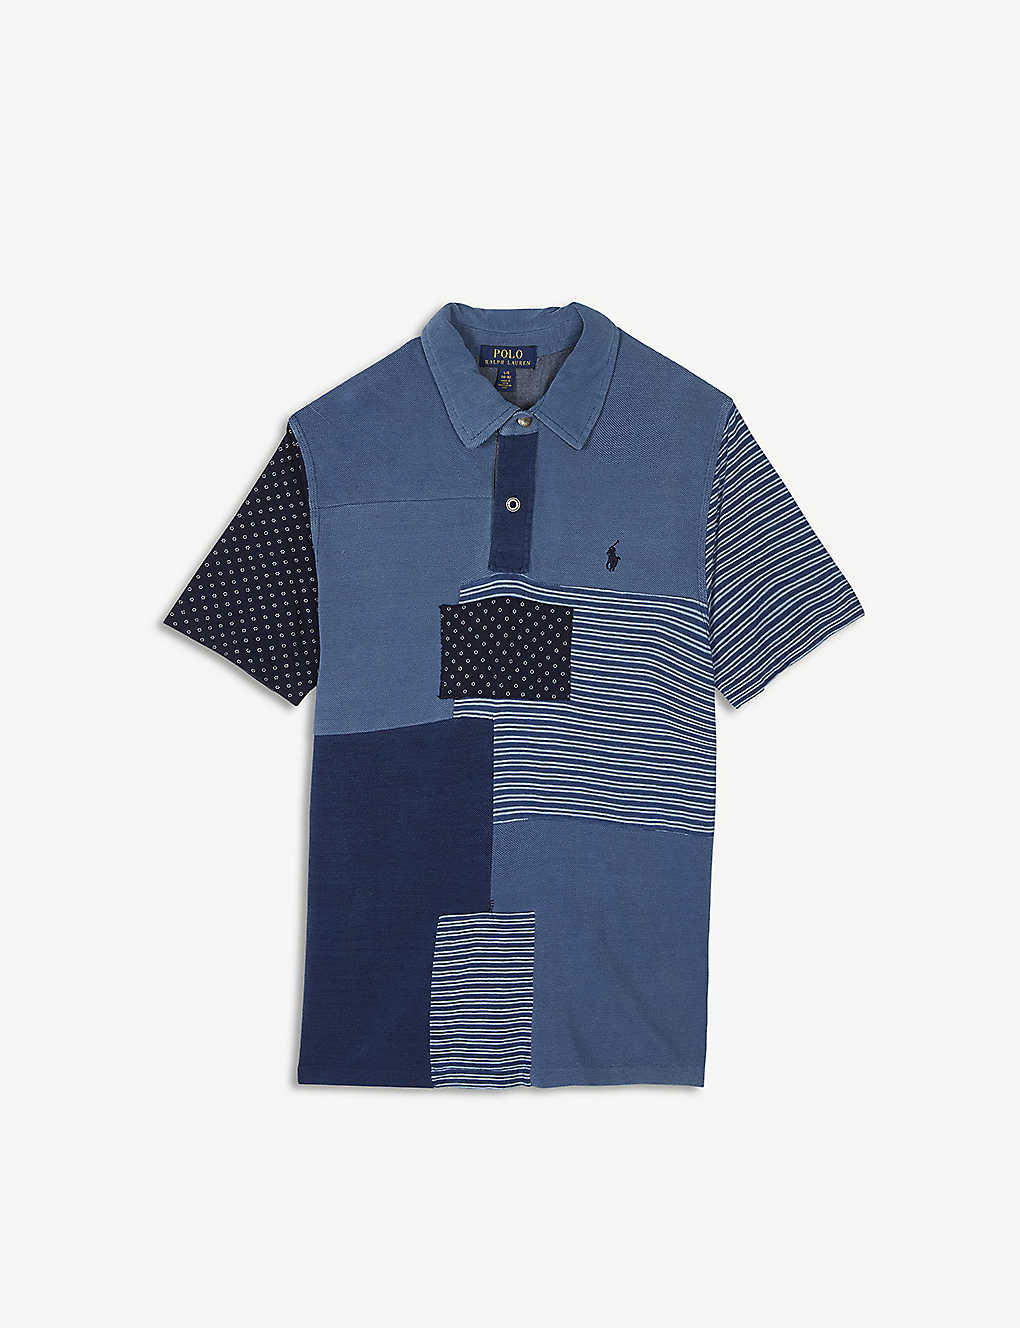 dc66cca4e3 RALPH LAUREN - Patchwork cotton polo shirt 6-14 years | Selfridges.com